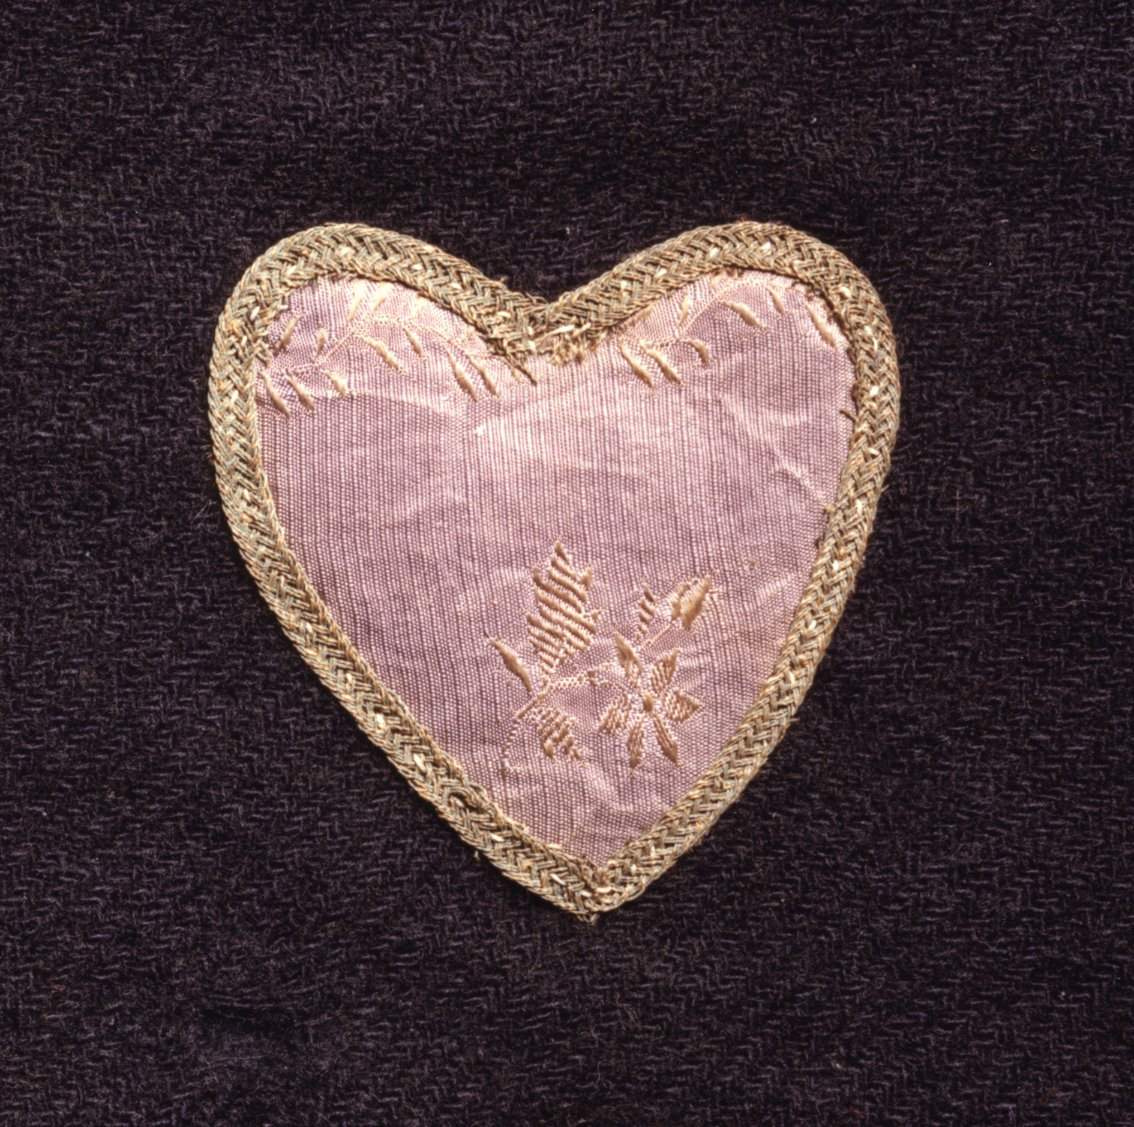 The fabric Purple Heart badge on display at the American Independence Museum.